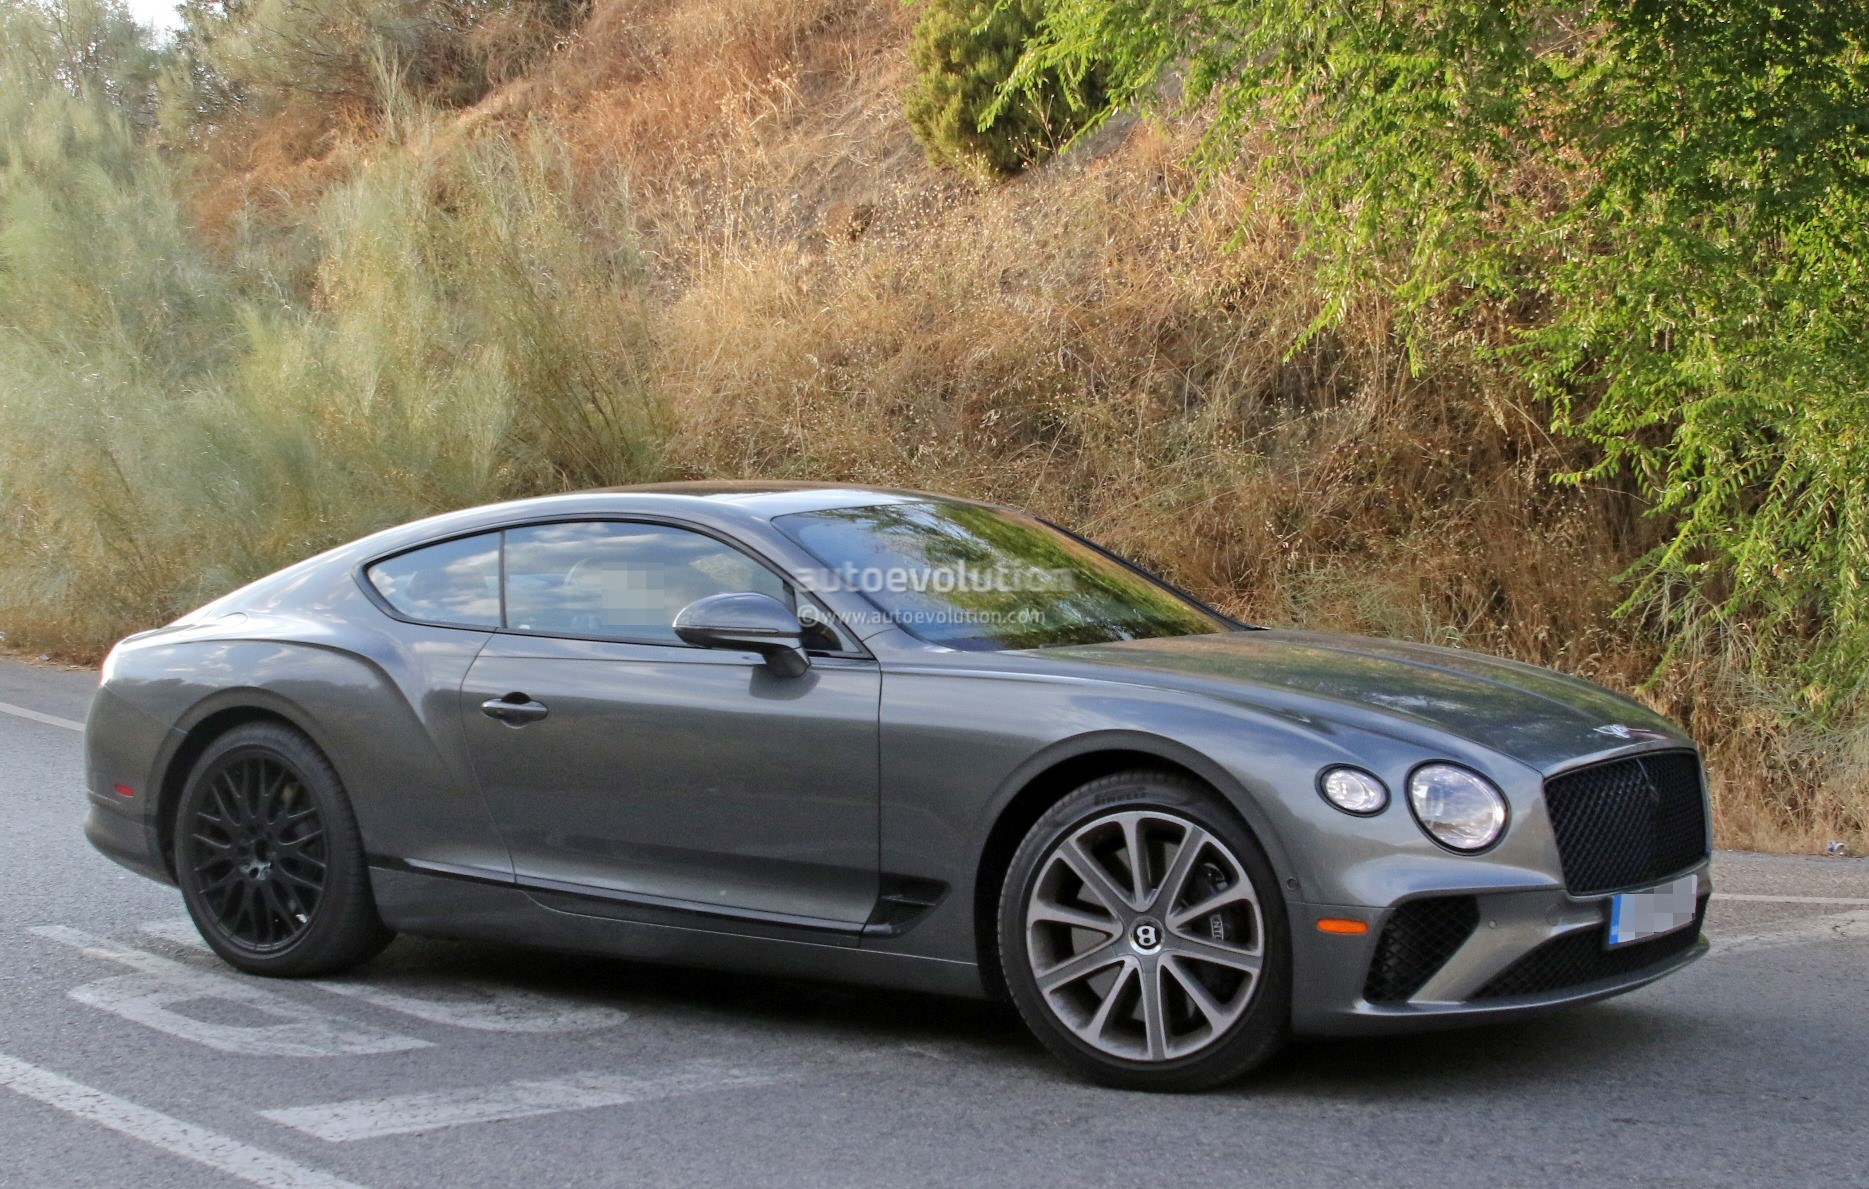 2019 Bentley Continental Gt Speed Spied With Black Grille Exterior Trim Autoevolution